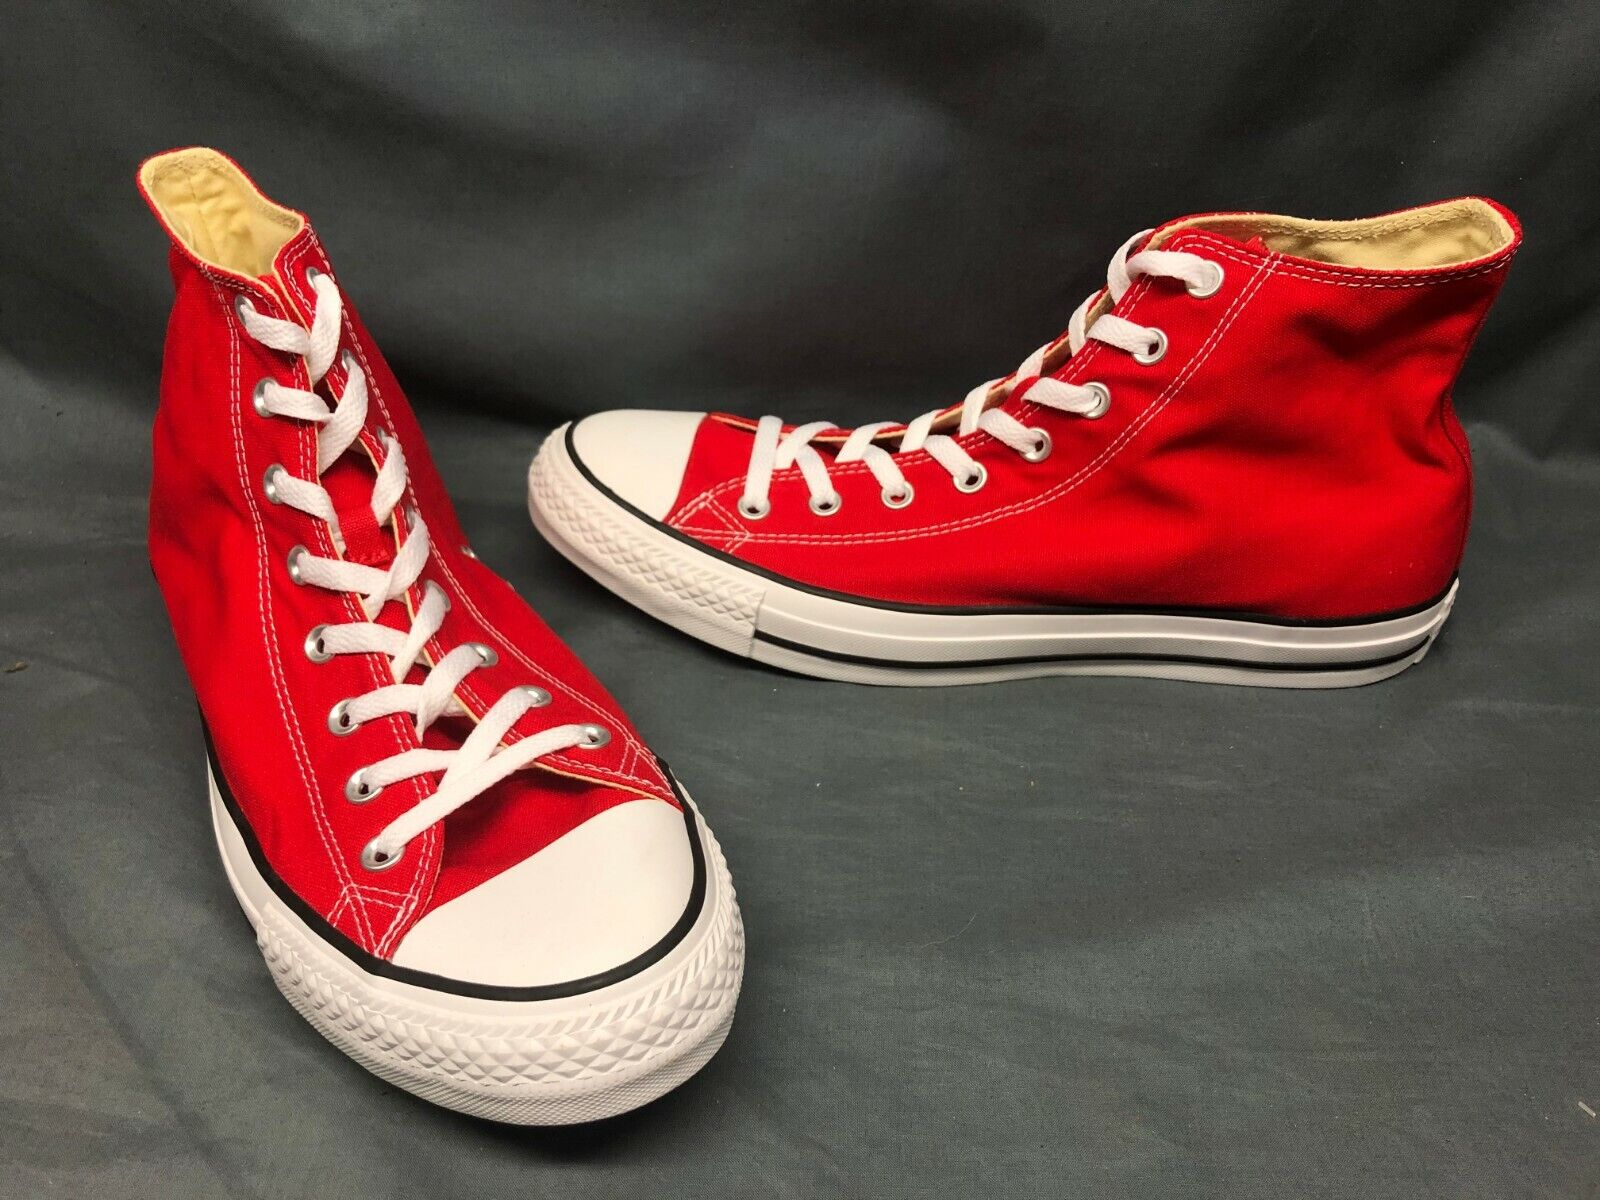 Converse Men's Chuck Taylor All Star High Sneakers Red Size